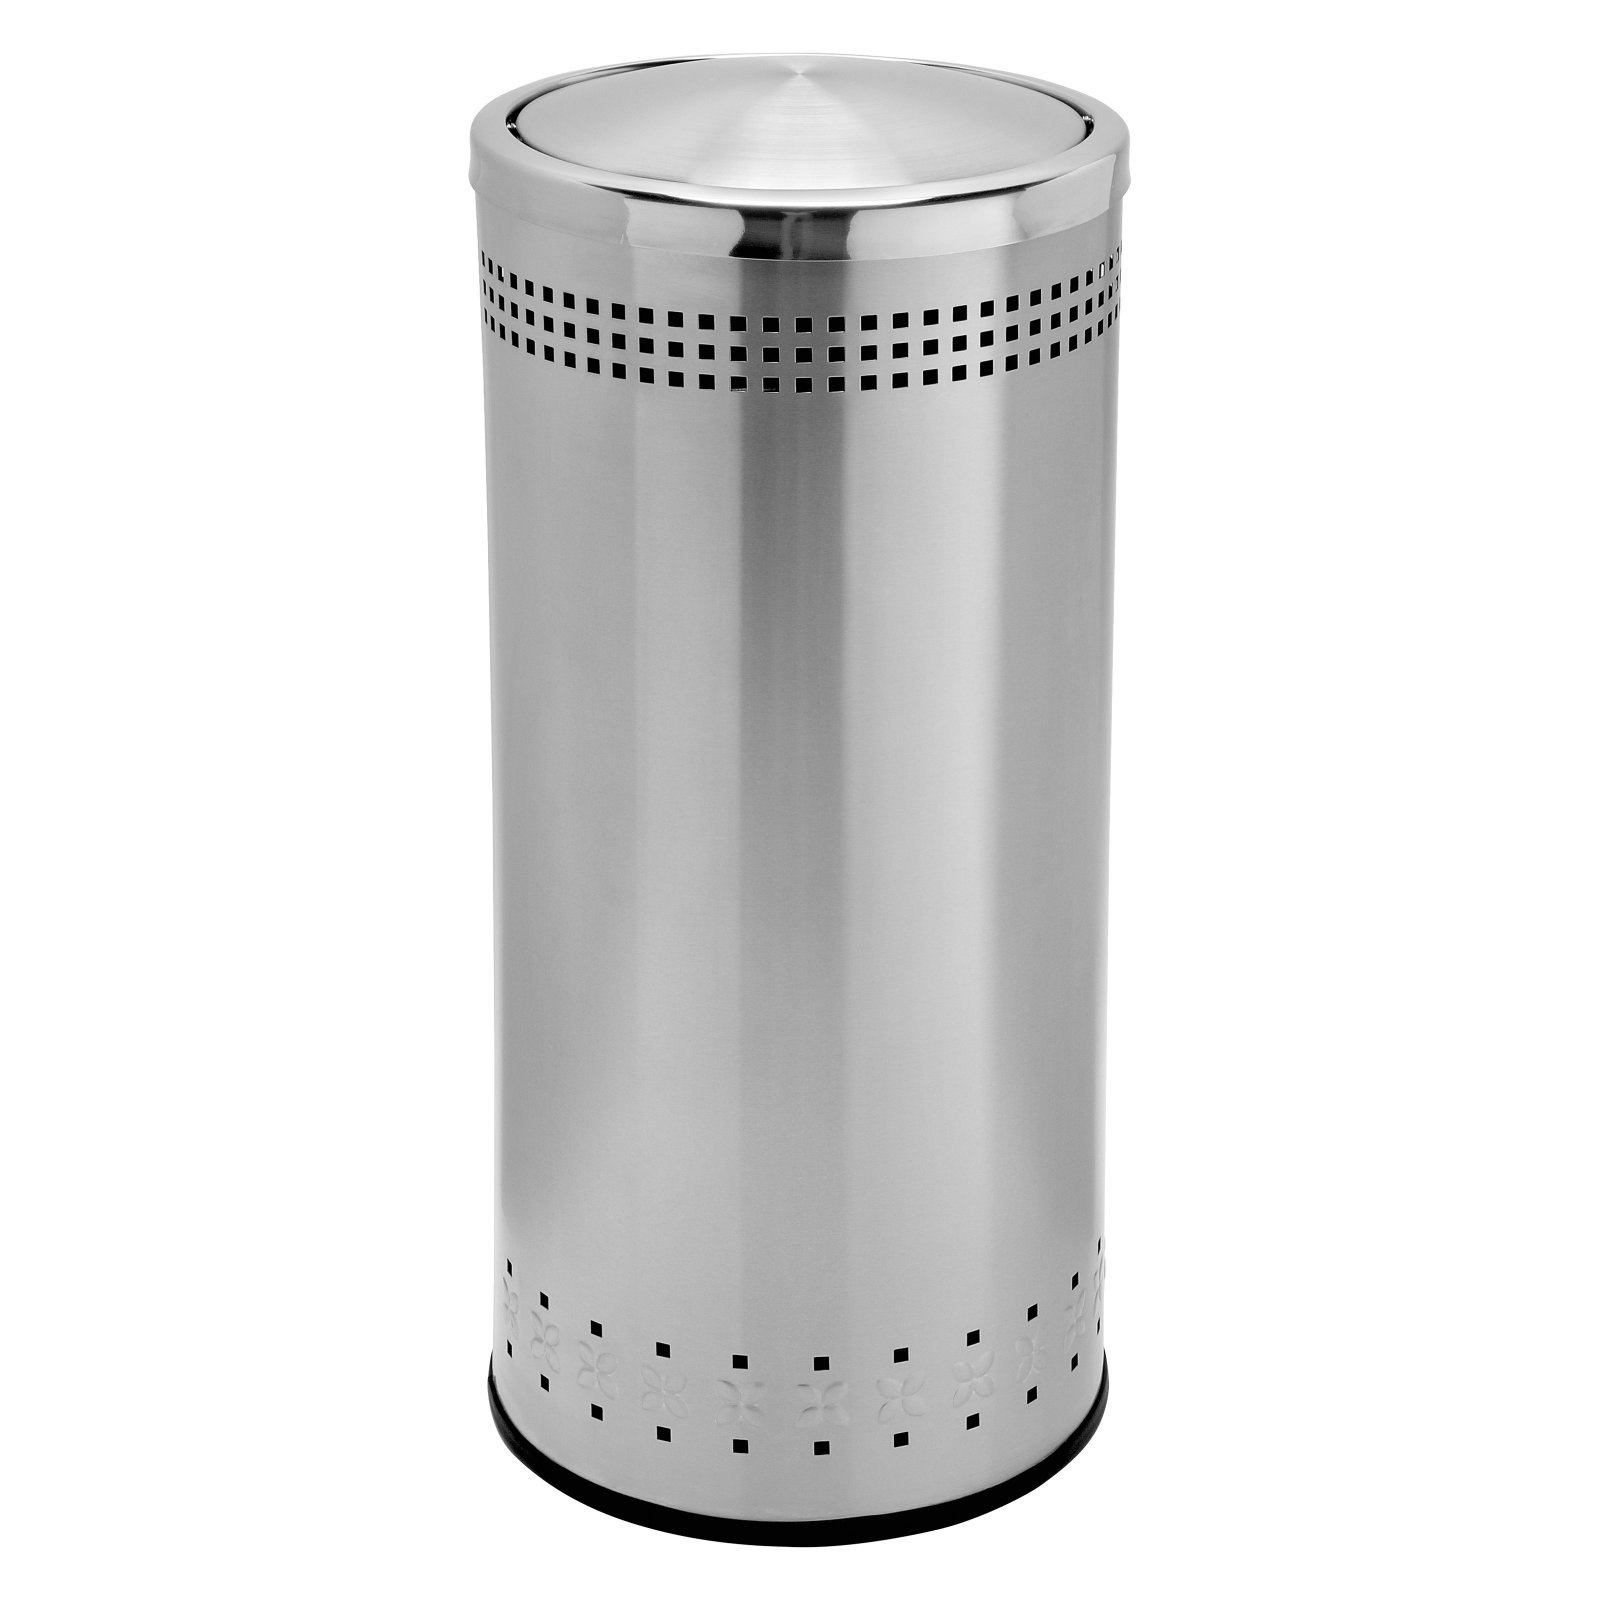 Commercial Zone 15 Gallon Swivel Lid Trash Can - Stainless Steel